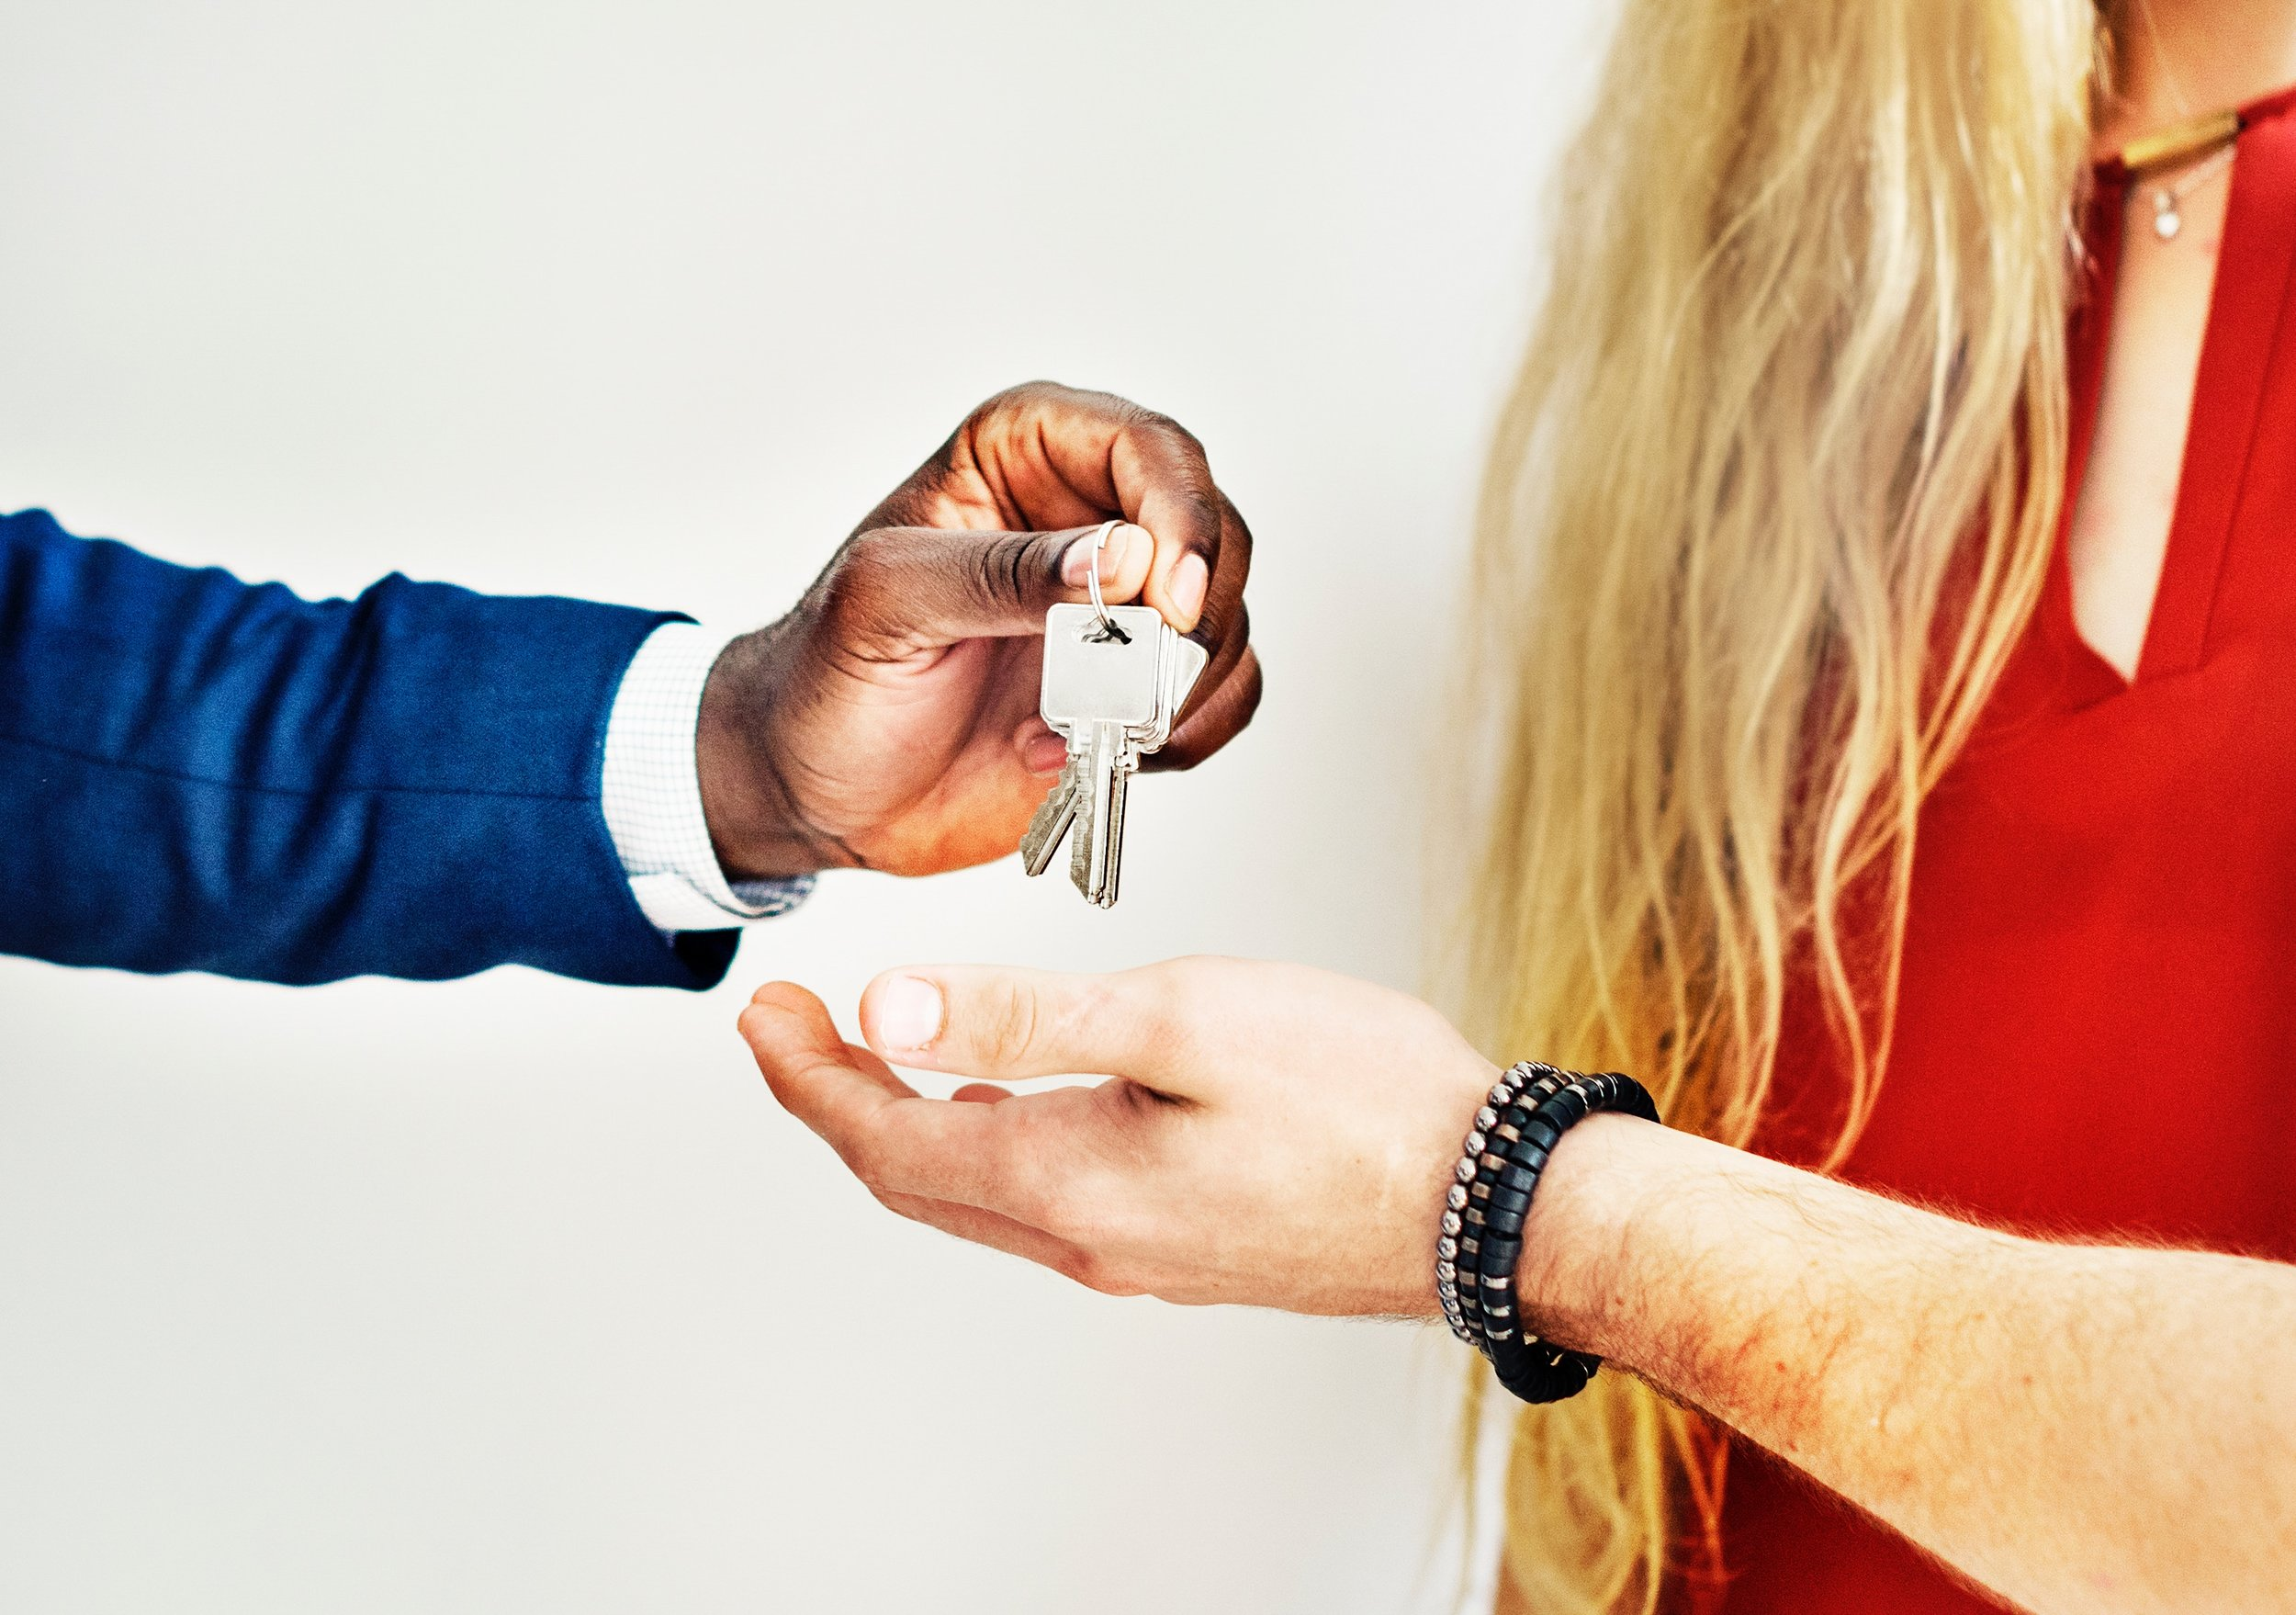 I know this picture shows an exchange of keys between two men with the woman standing aside, but I put it here because in my search for images showing homeownership, this is the majority of photos. It's typically a couple, with the man taking the keys, or it's just a man taking the keys.  This needs to change. Stats show that women are outbuying men these days in the real estate market.